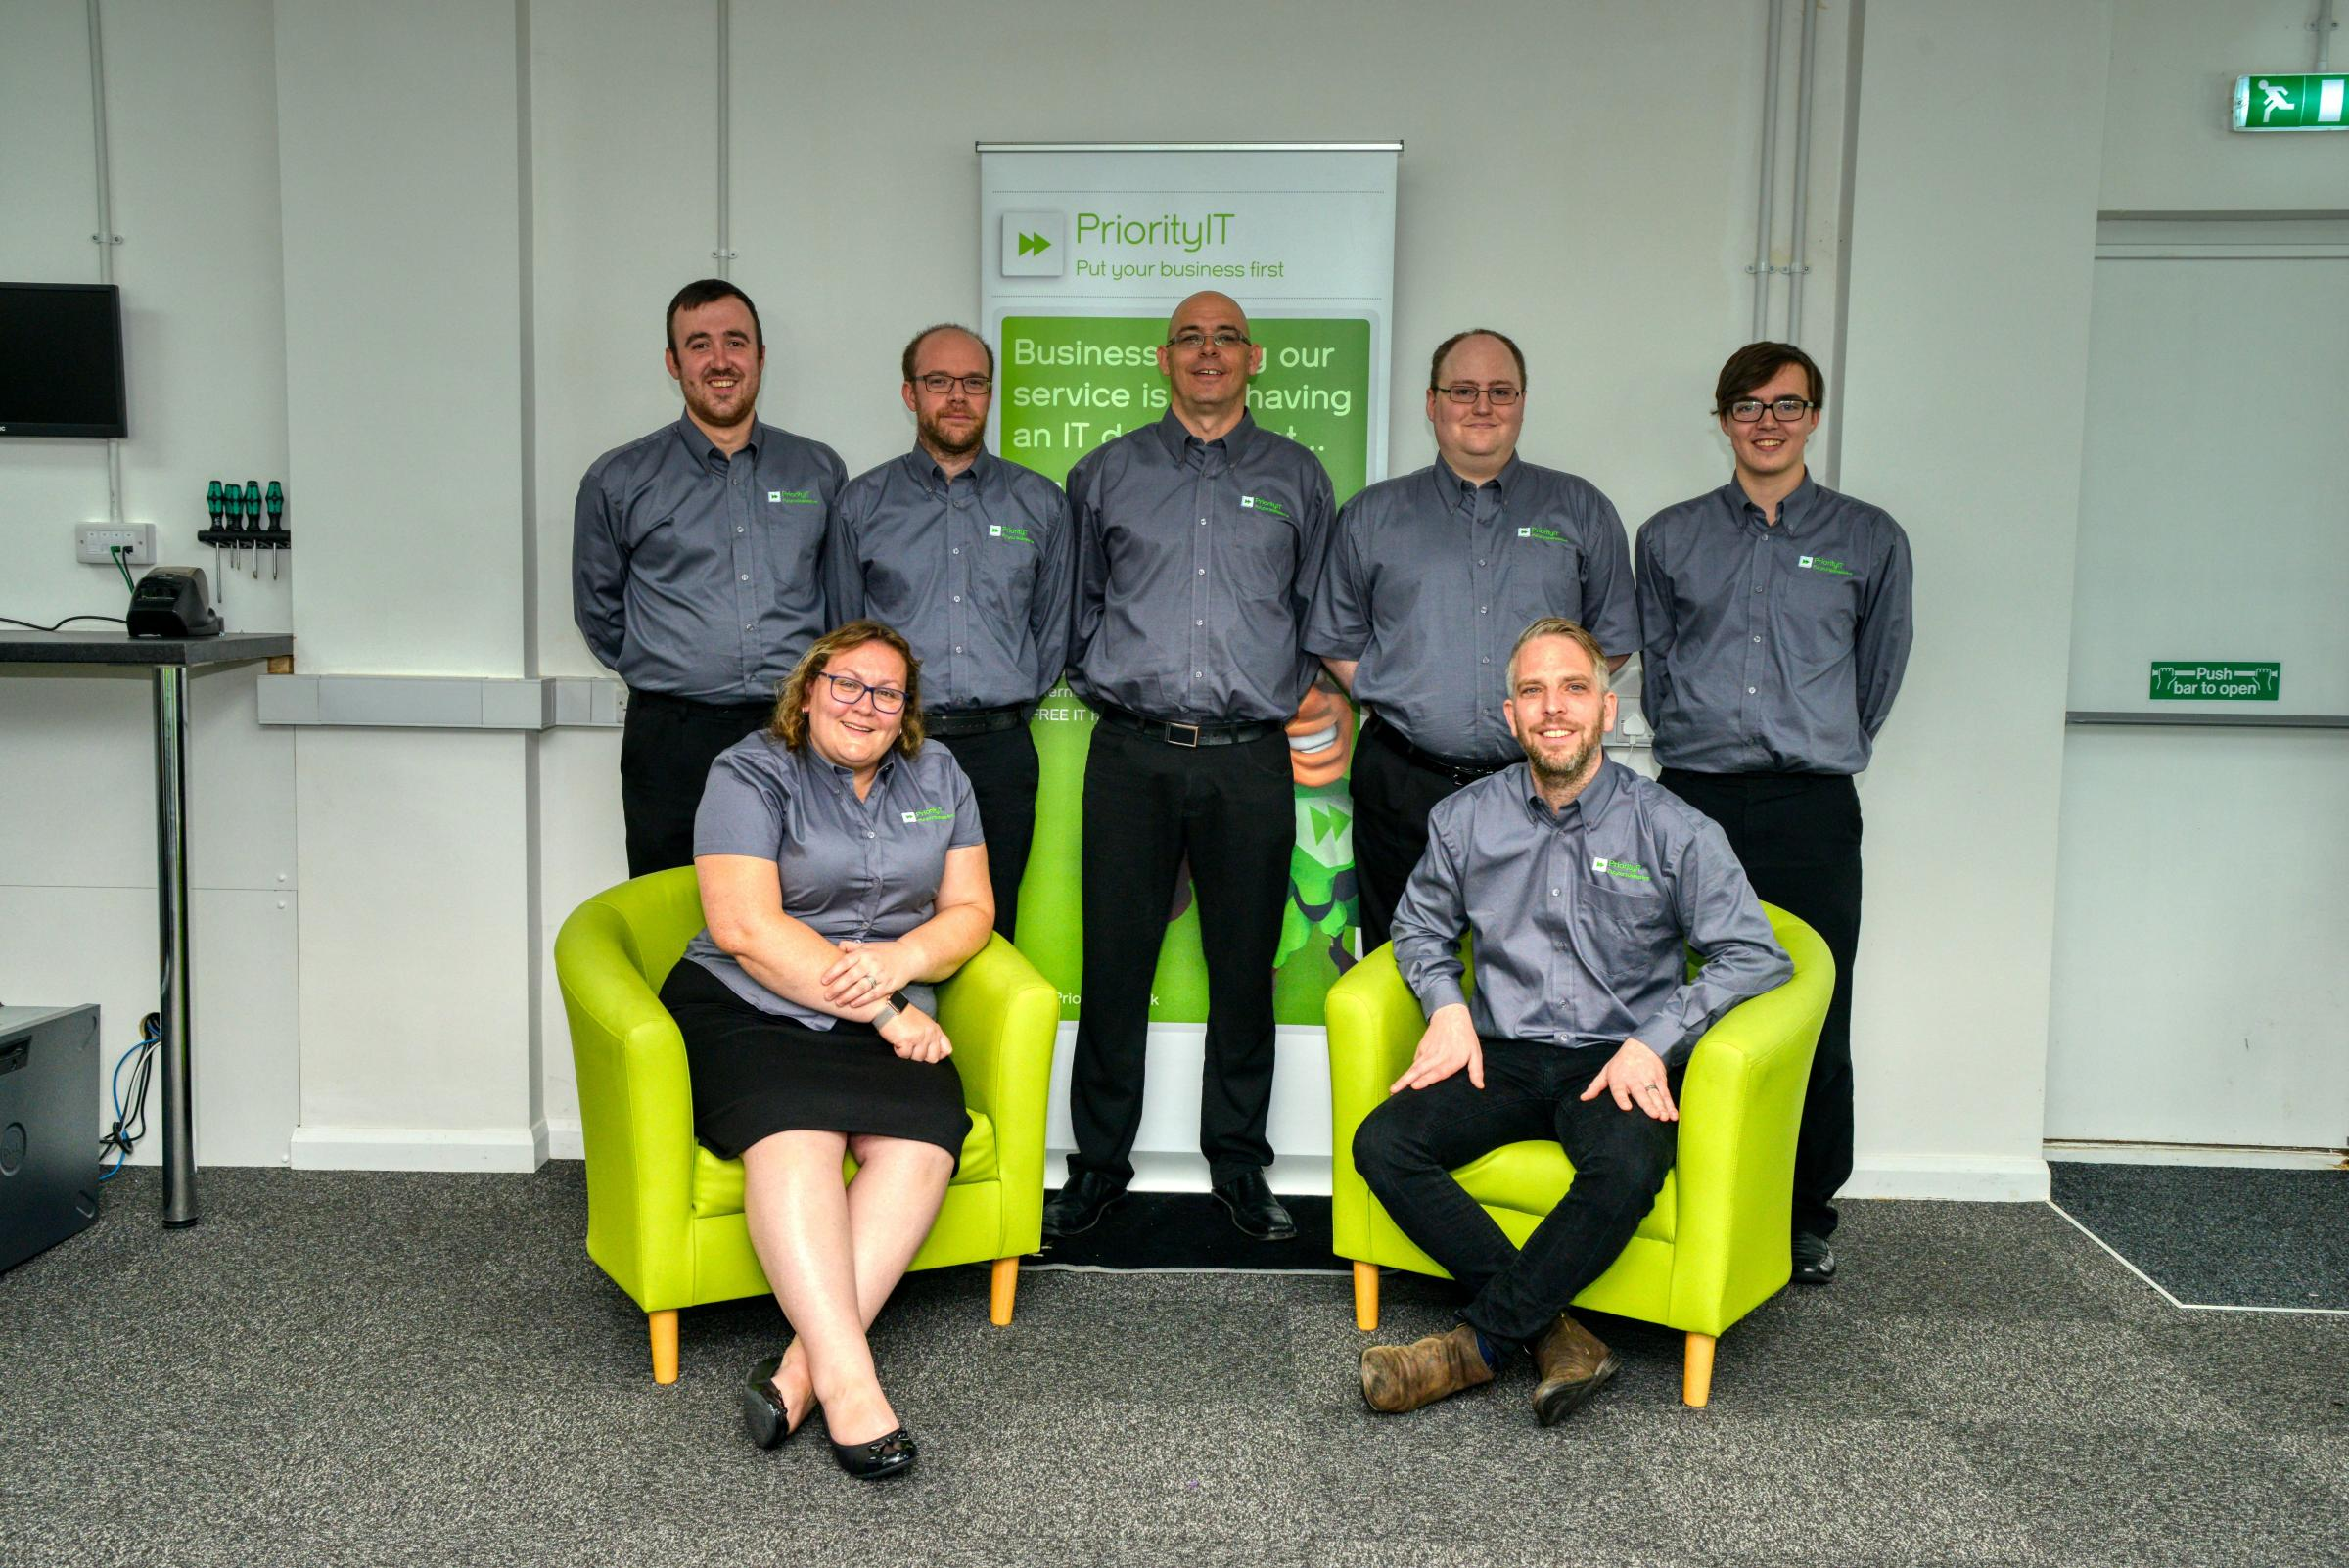 The team at Priority IT